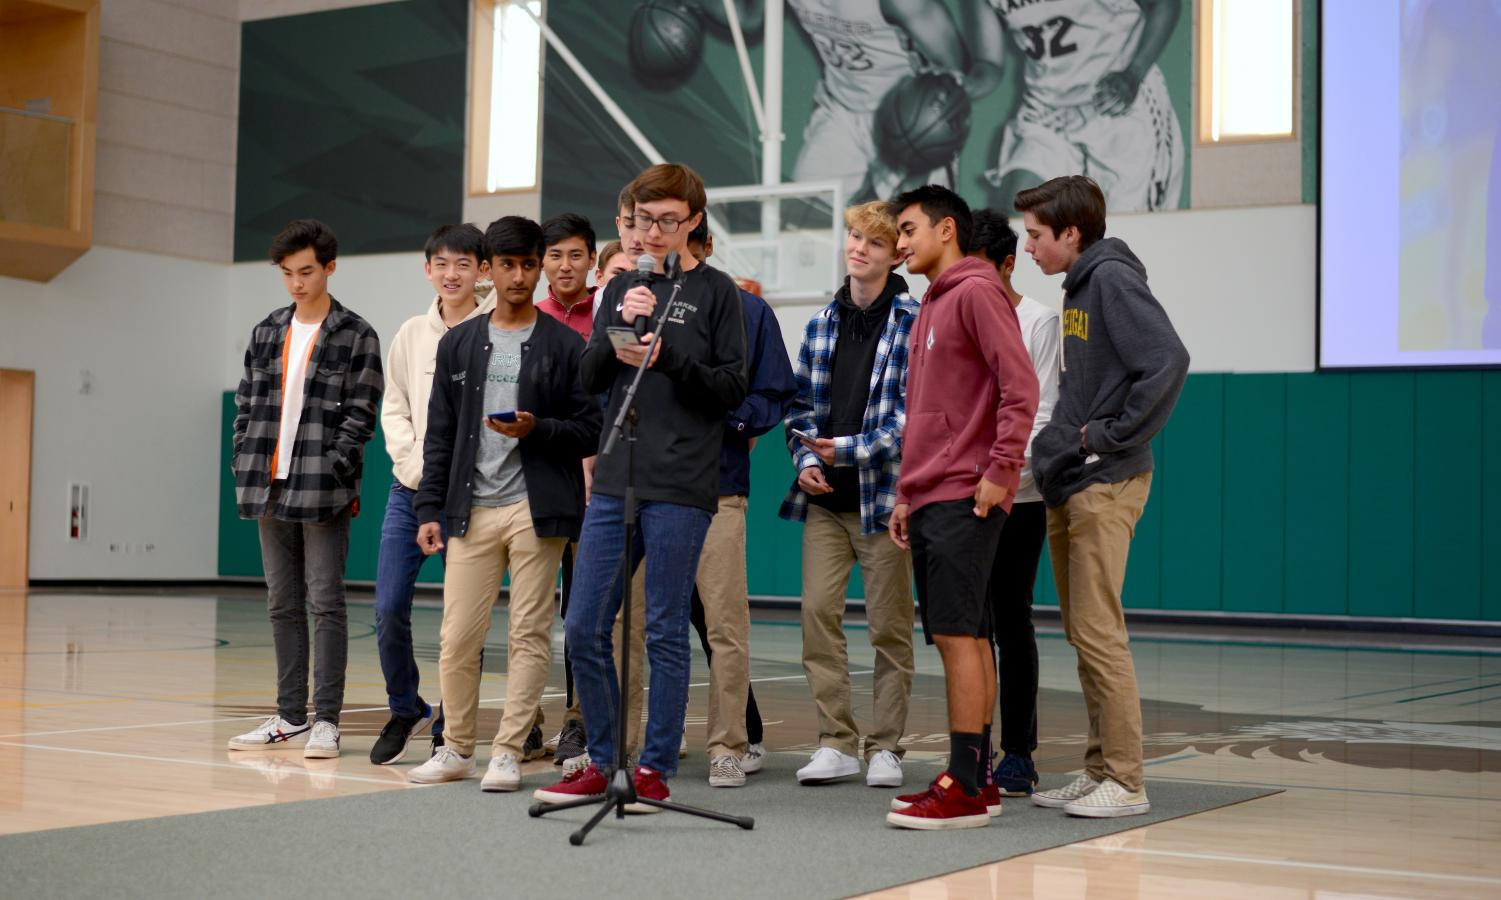 Members of the boys soccer team announce that their annual Kicks Against Soccer games are on Friday. The boys junior varsity team plays at 3 p.m. against Pinewood, girls varsity team plays at 4:45 p.m. against Notre Dame and boys varsity team plays at 6:30 against Priory.